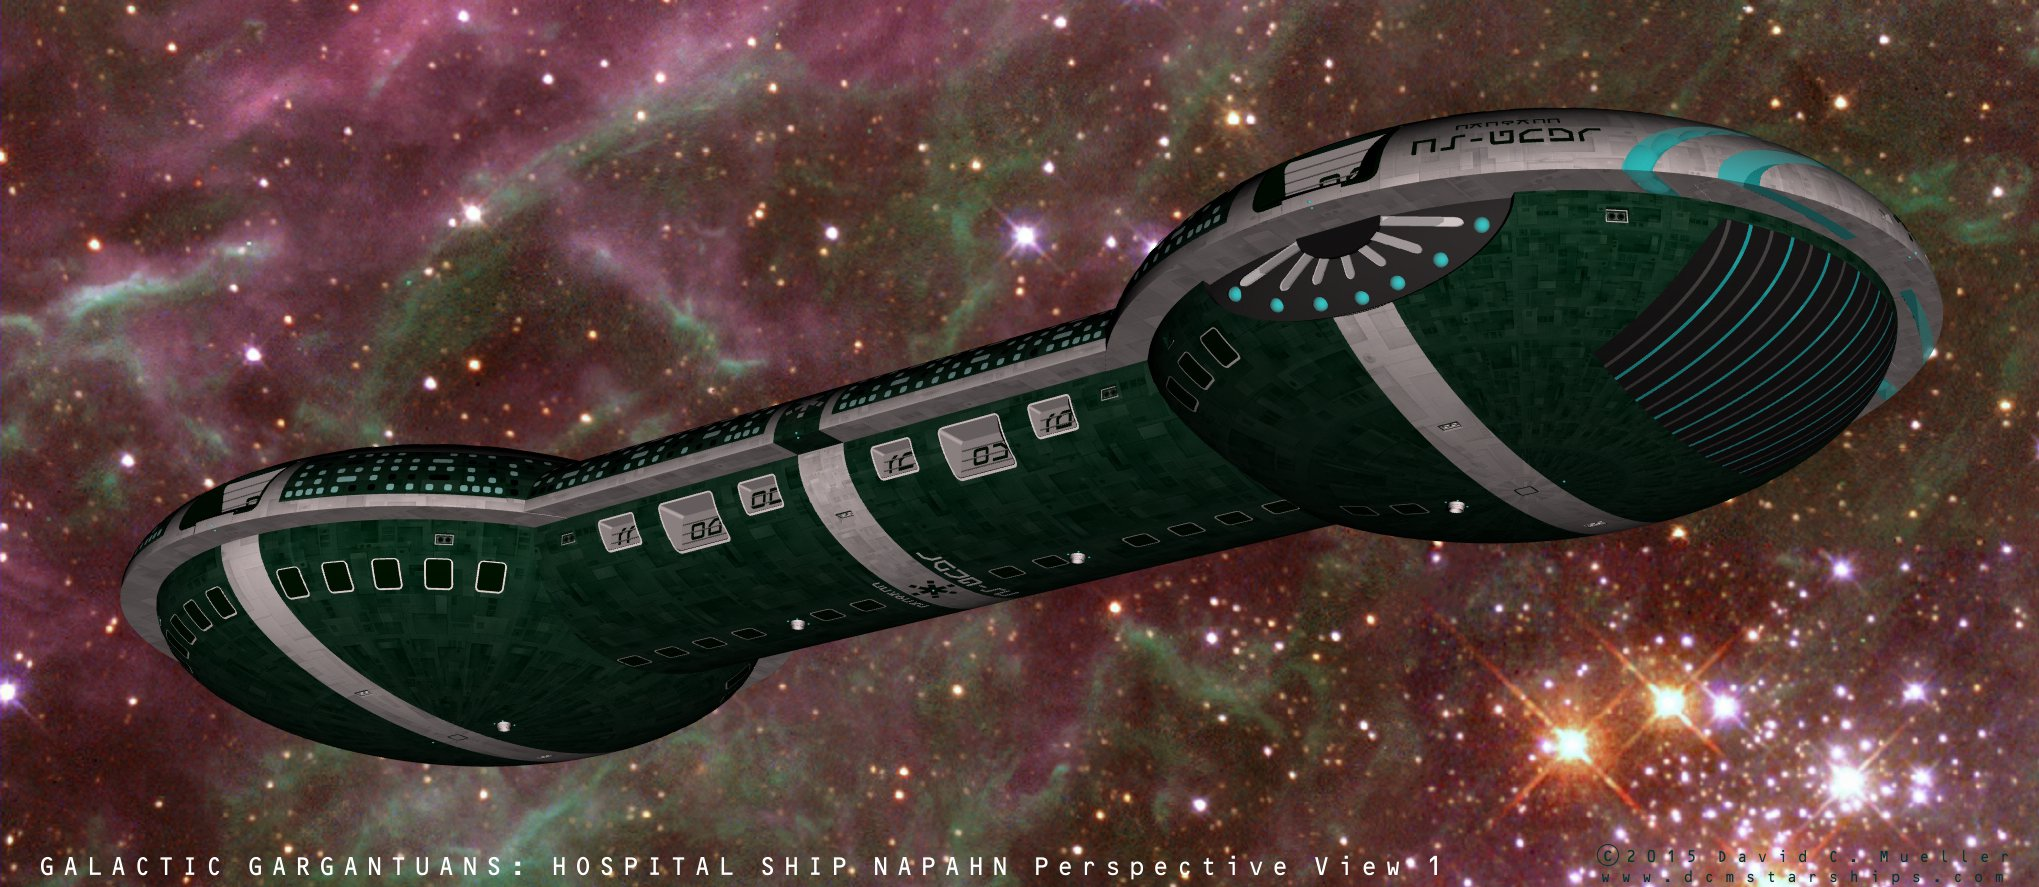 Galactic Gargantuans: Hospital Ship  View 2